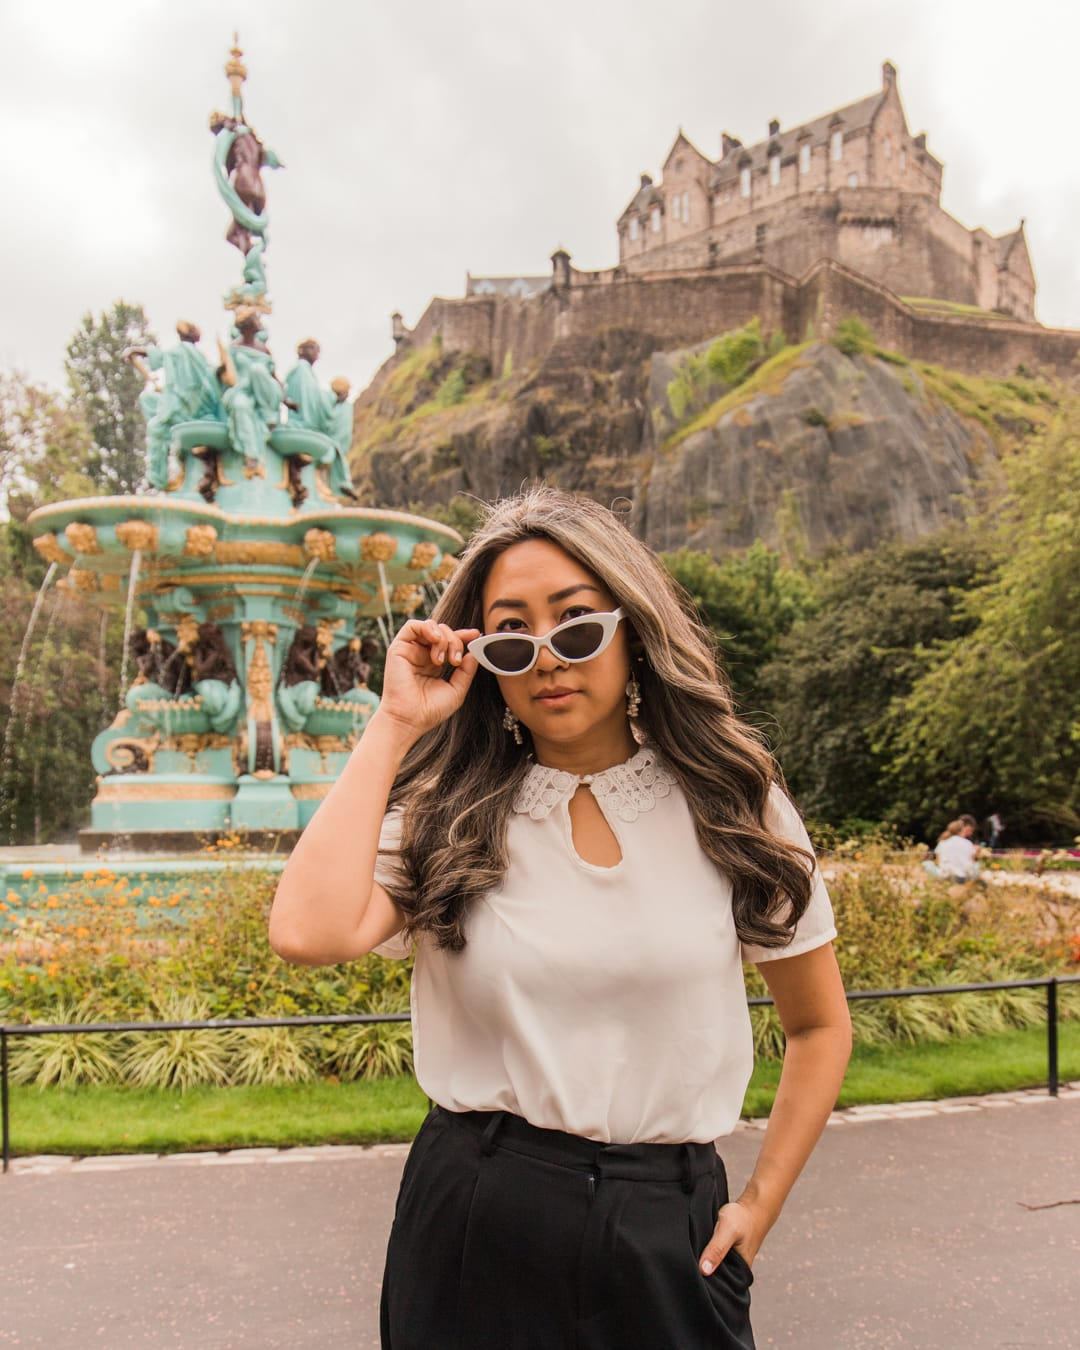 Ross Fountain, one of the most Instagrammable places in Edinburgh